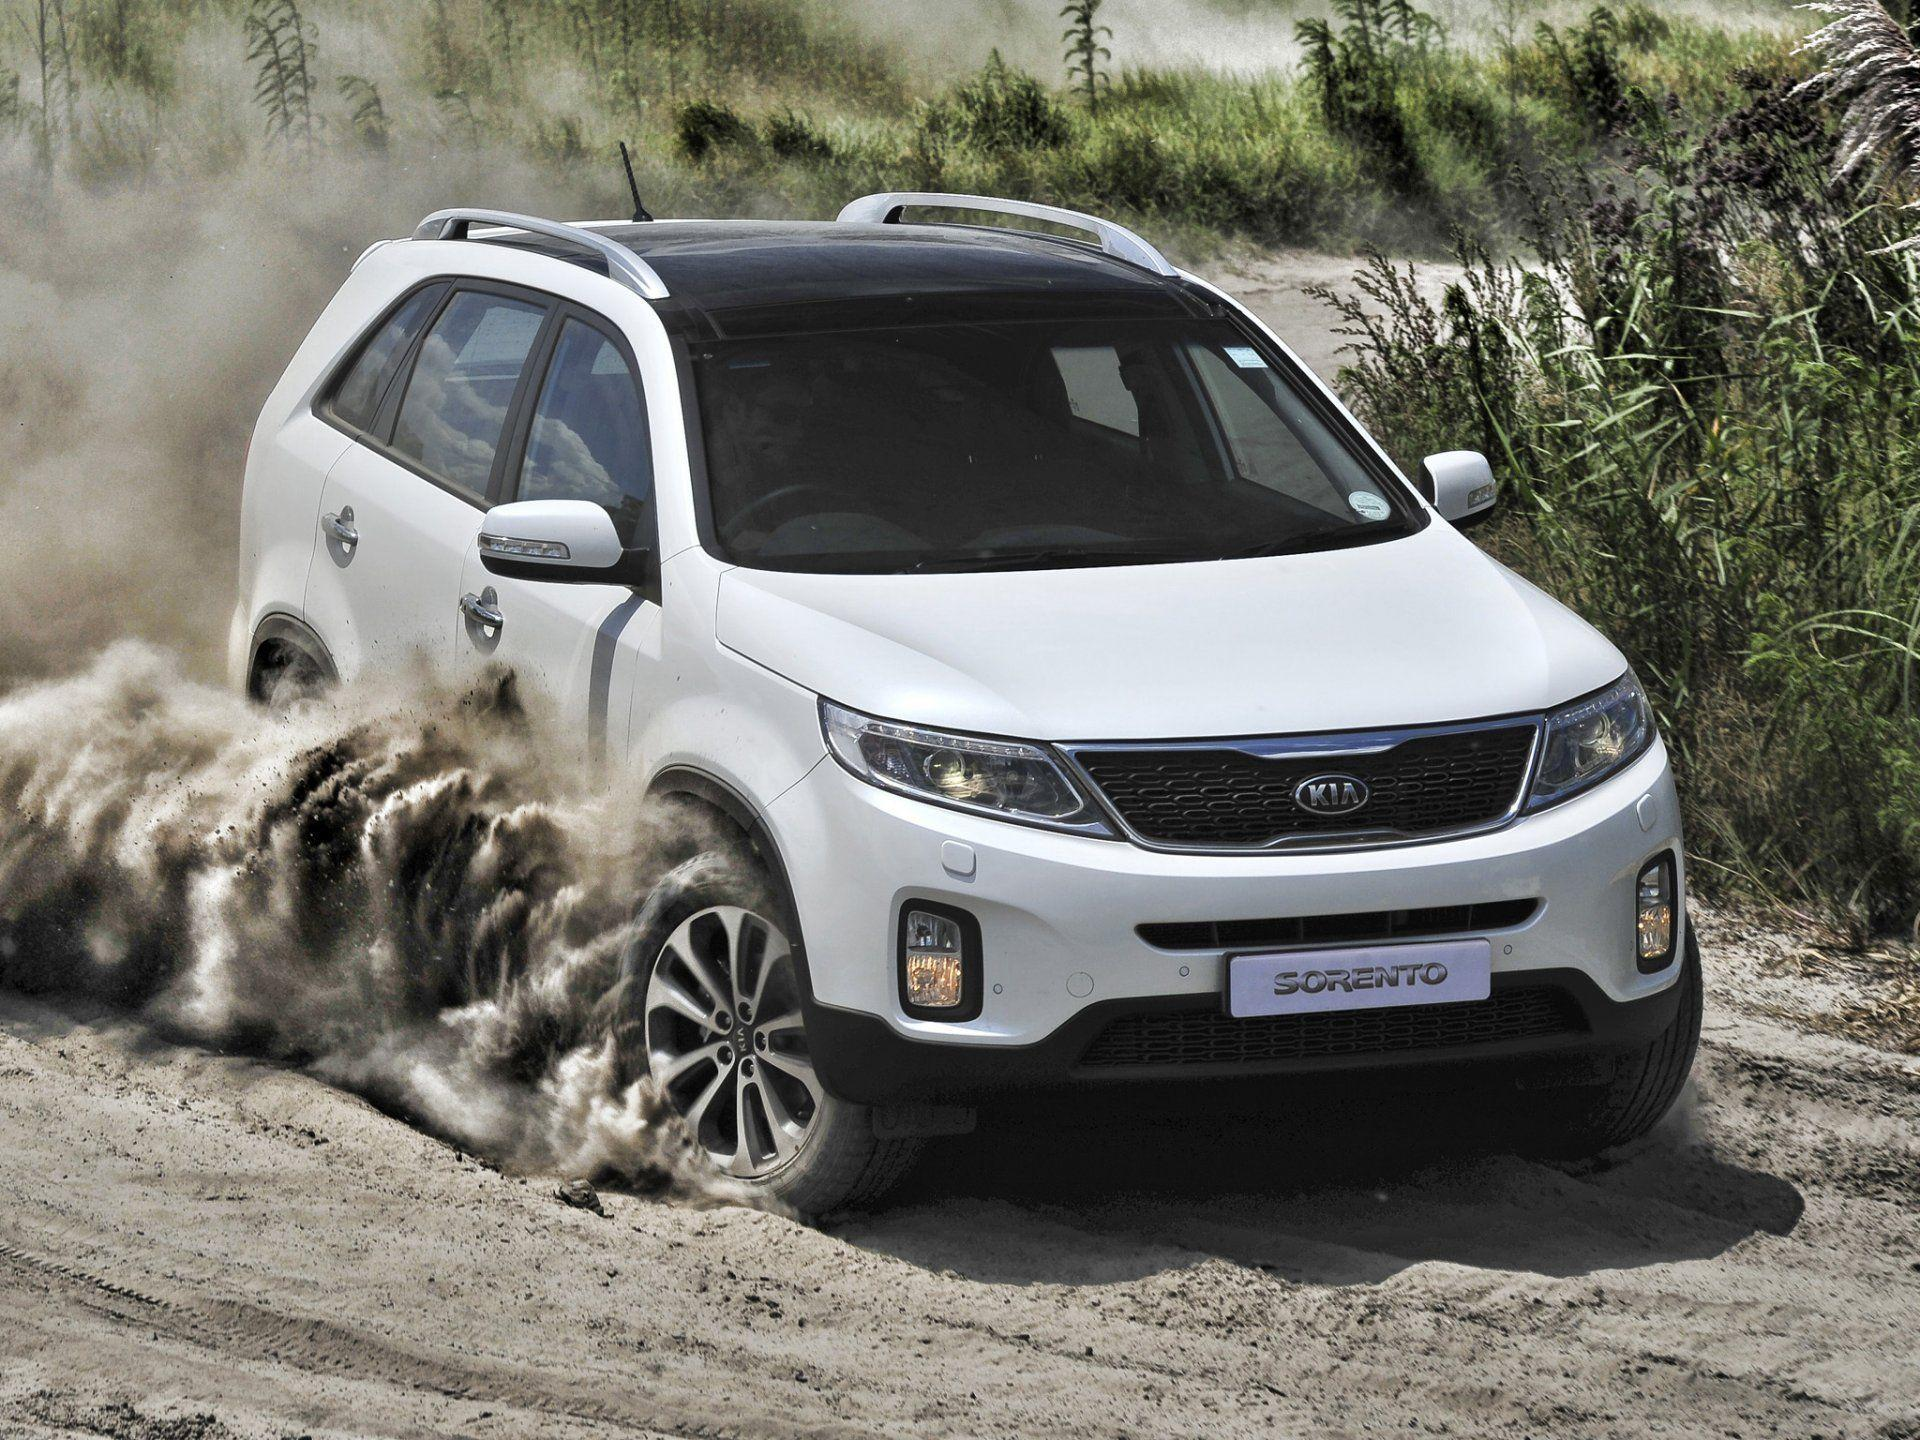 kia sorento dust land wheel slip HD wallpapers